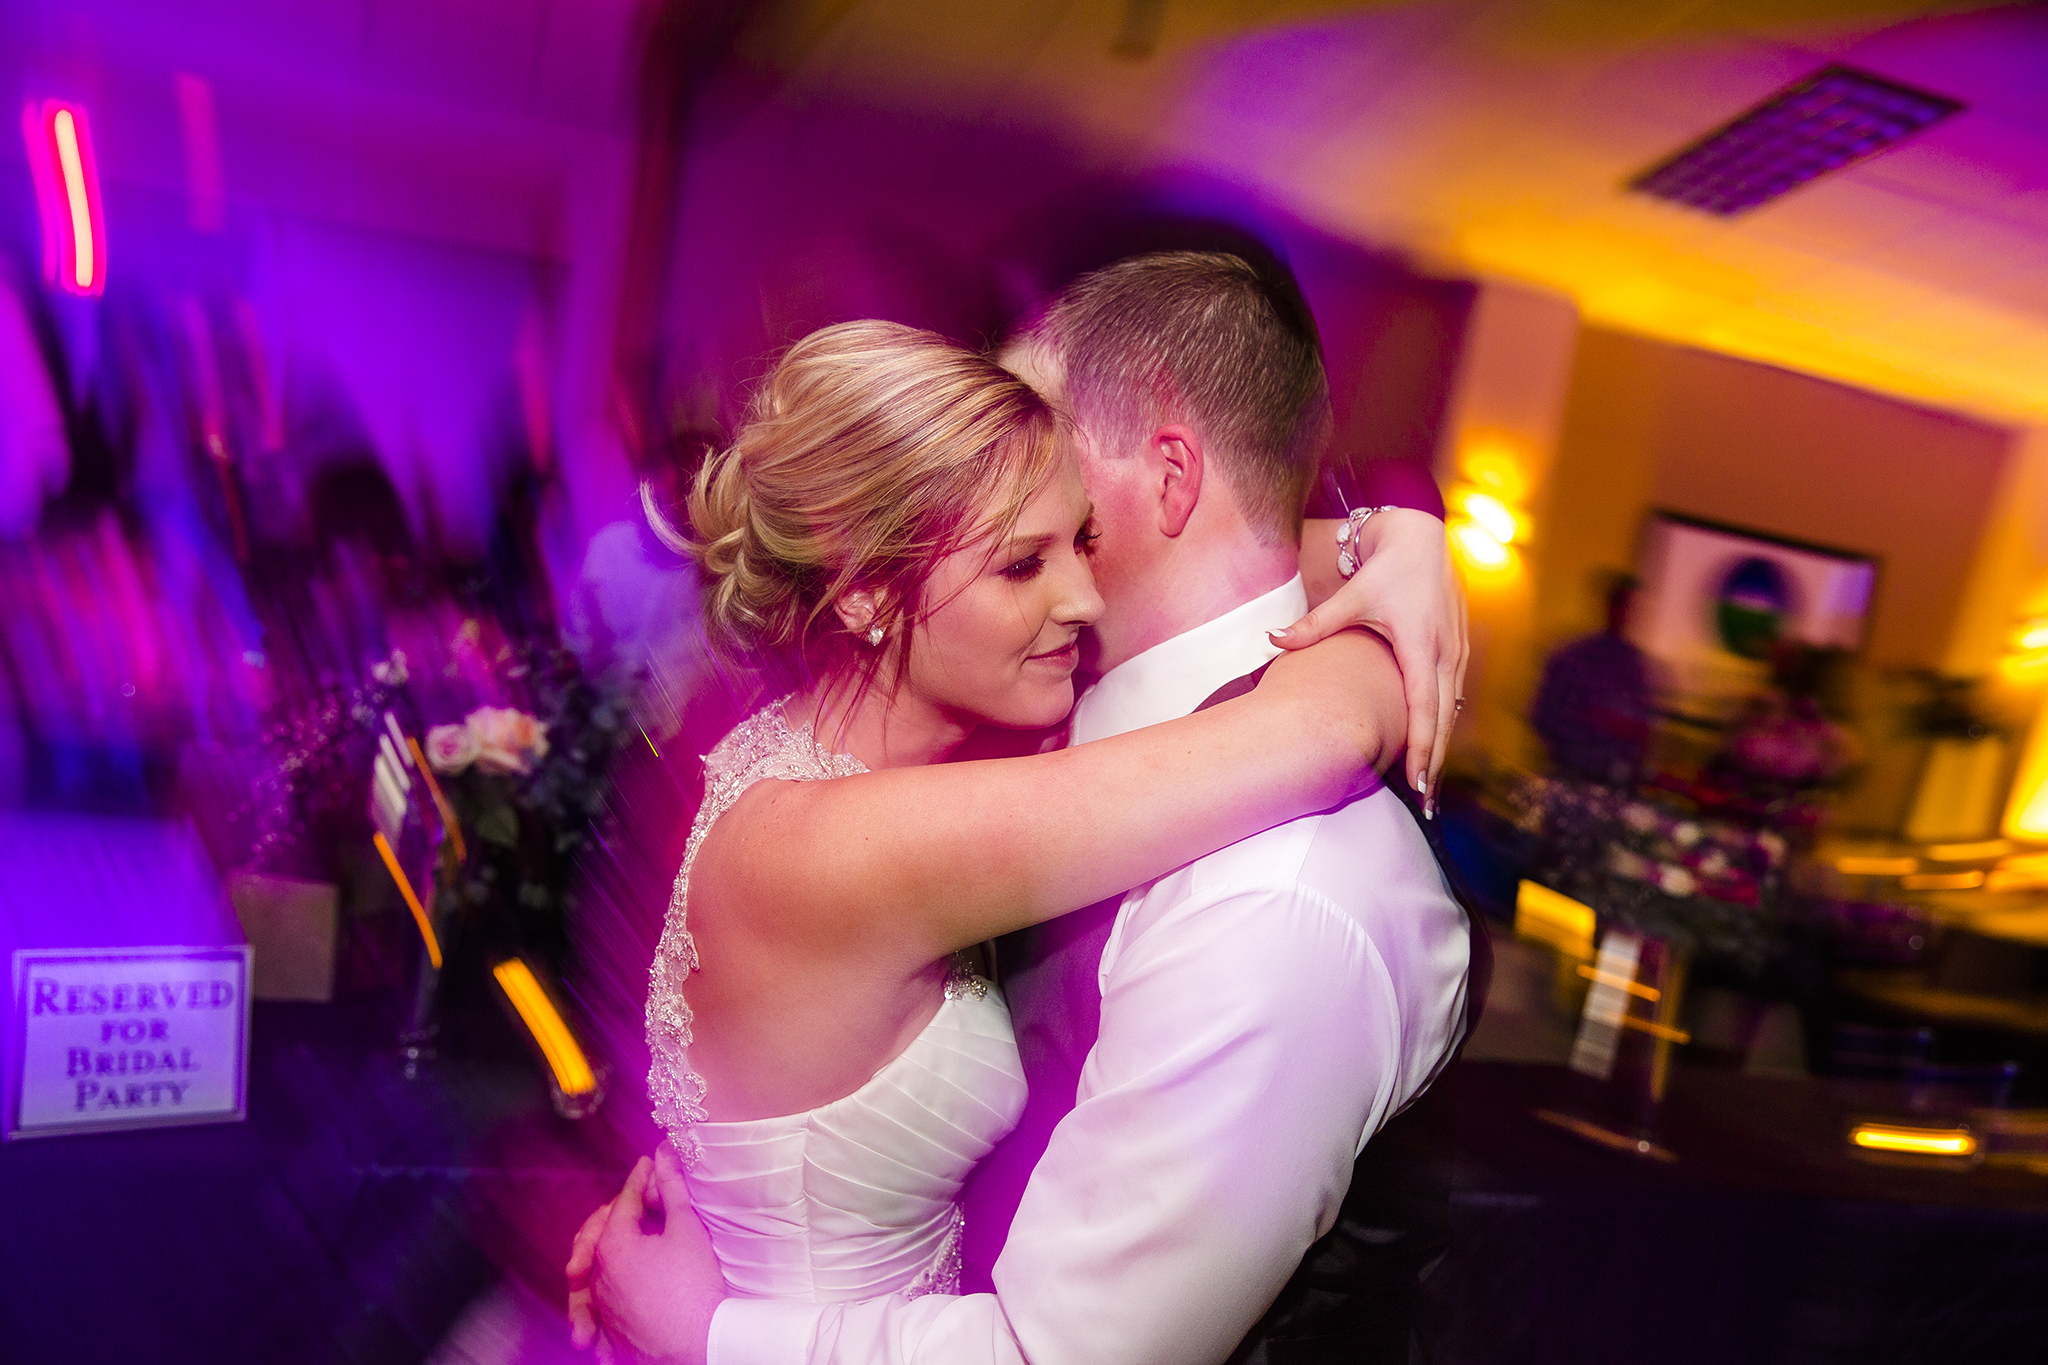 long exposure, colorful, bride and groom, wedding reception, fun dance pictures